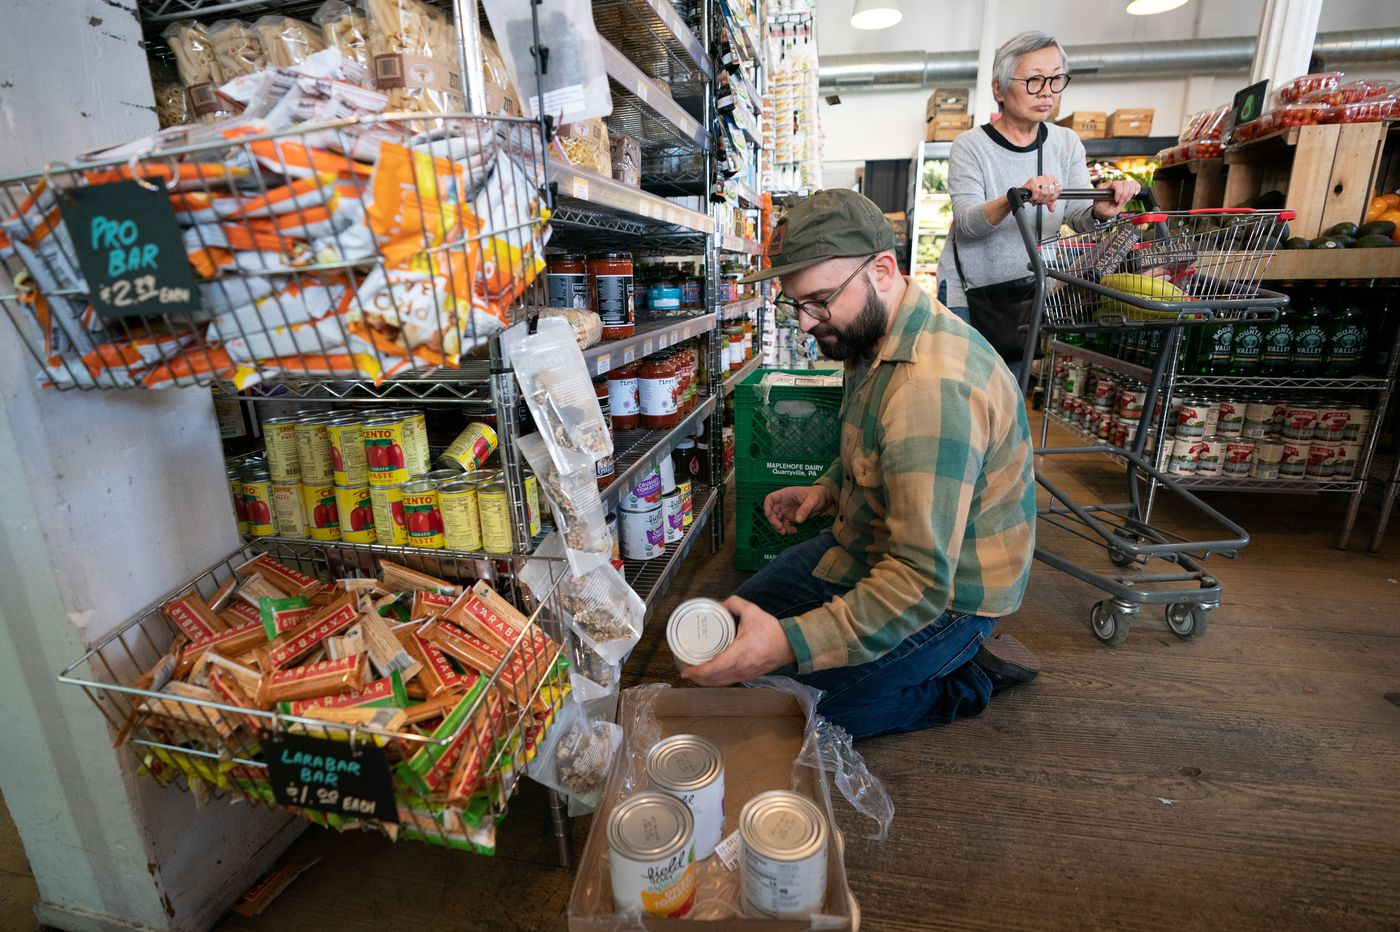 What you need to know about buying food (and booze) during the shutdown